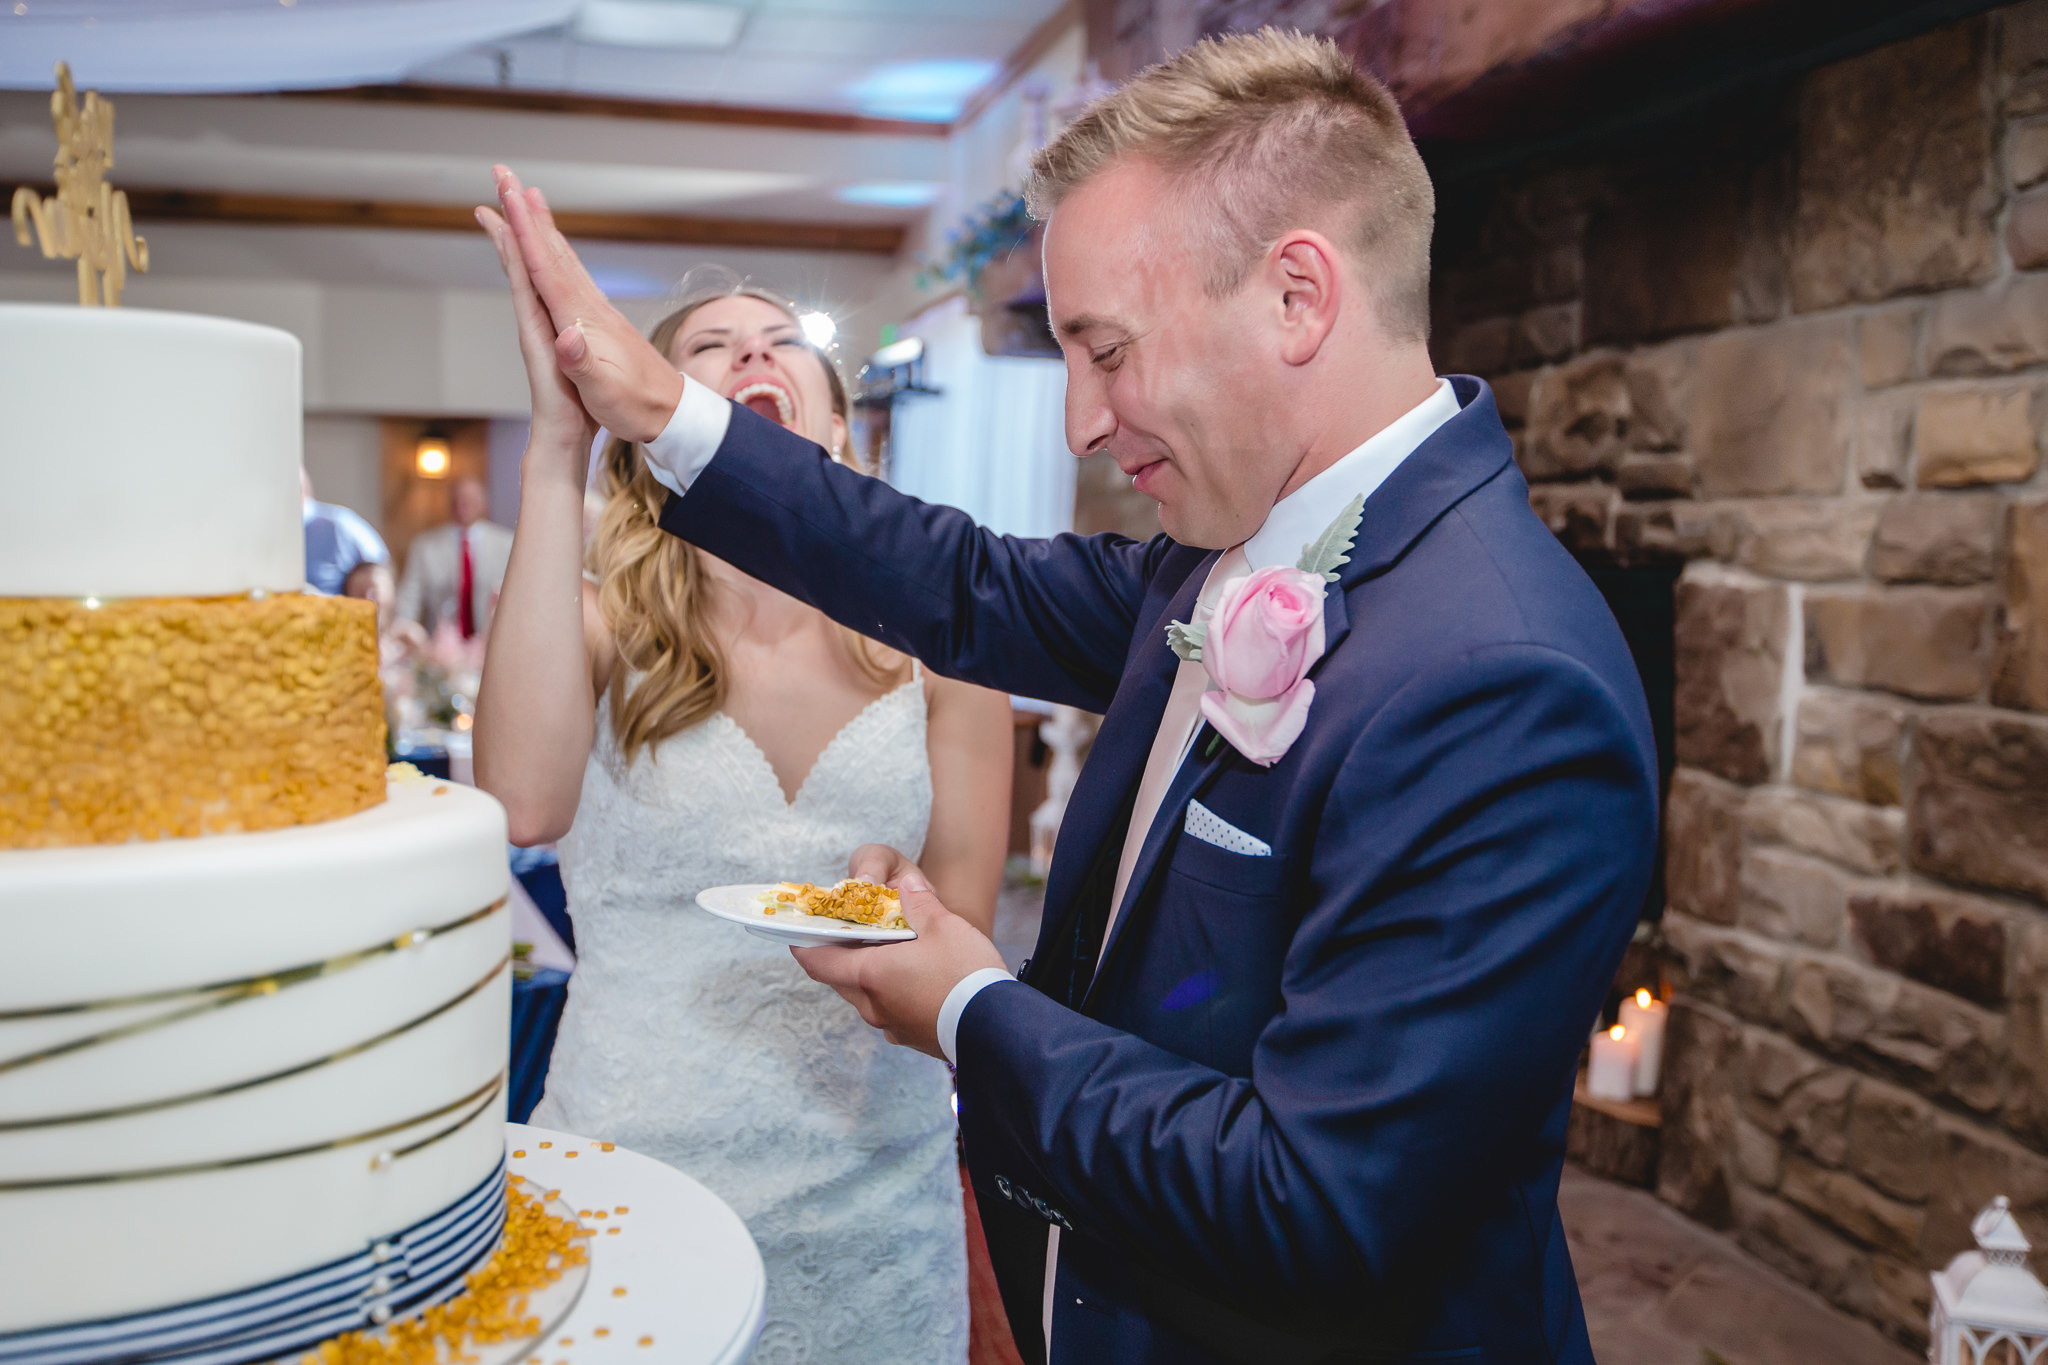 Bride & groom high five after cutting the cake